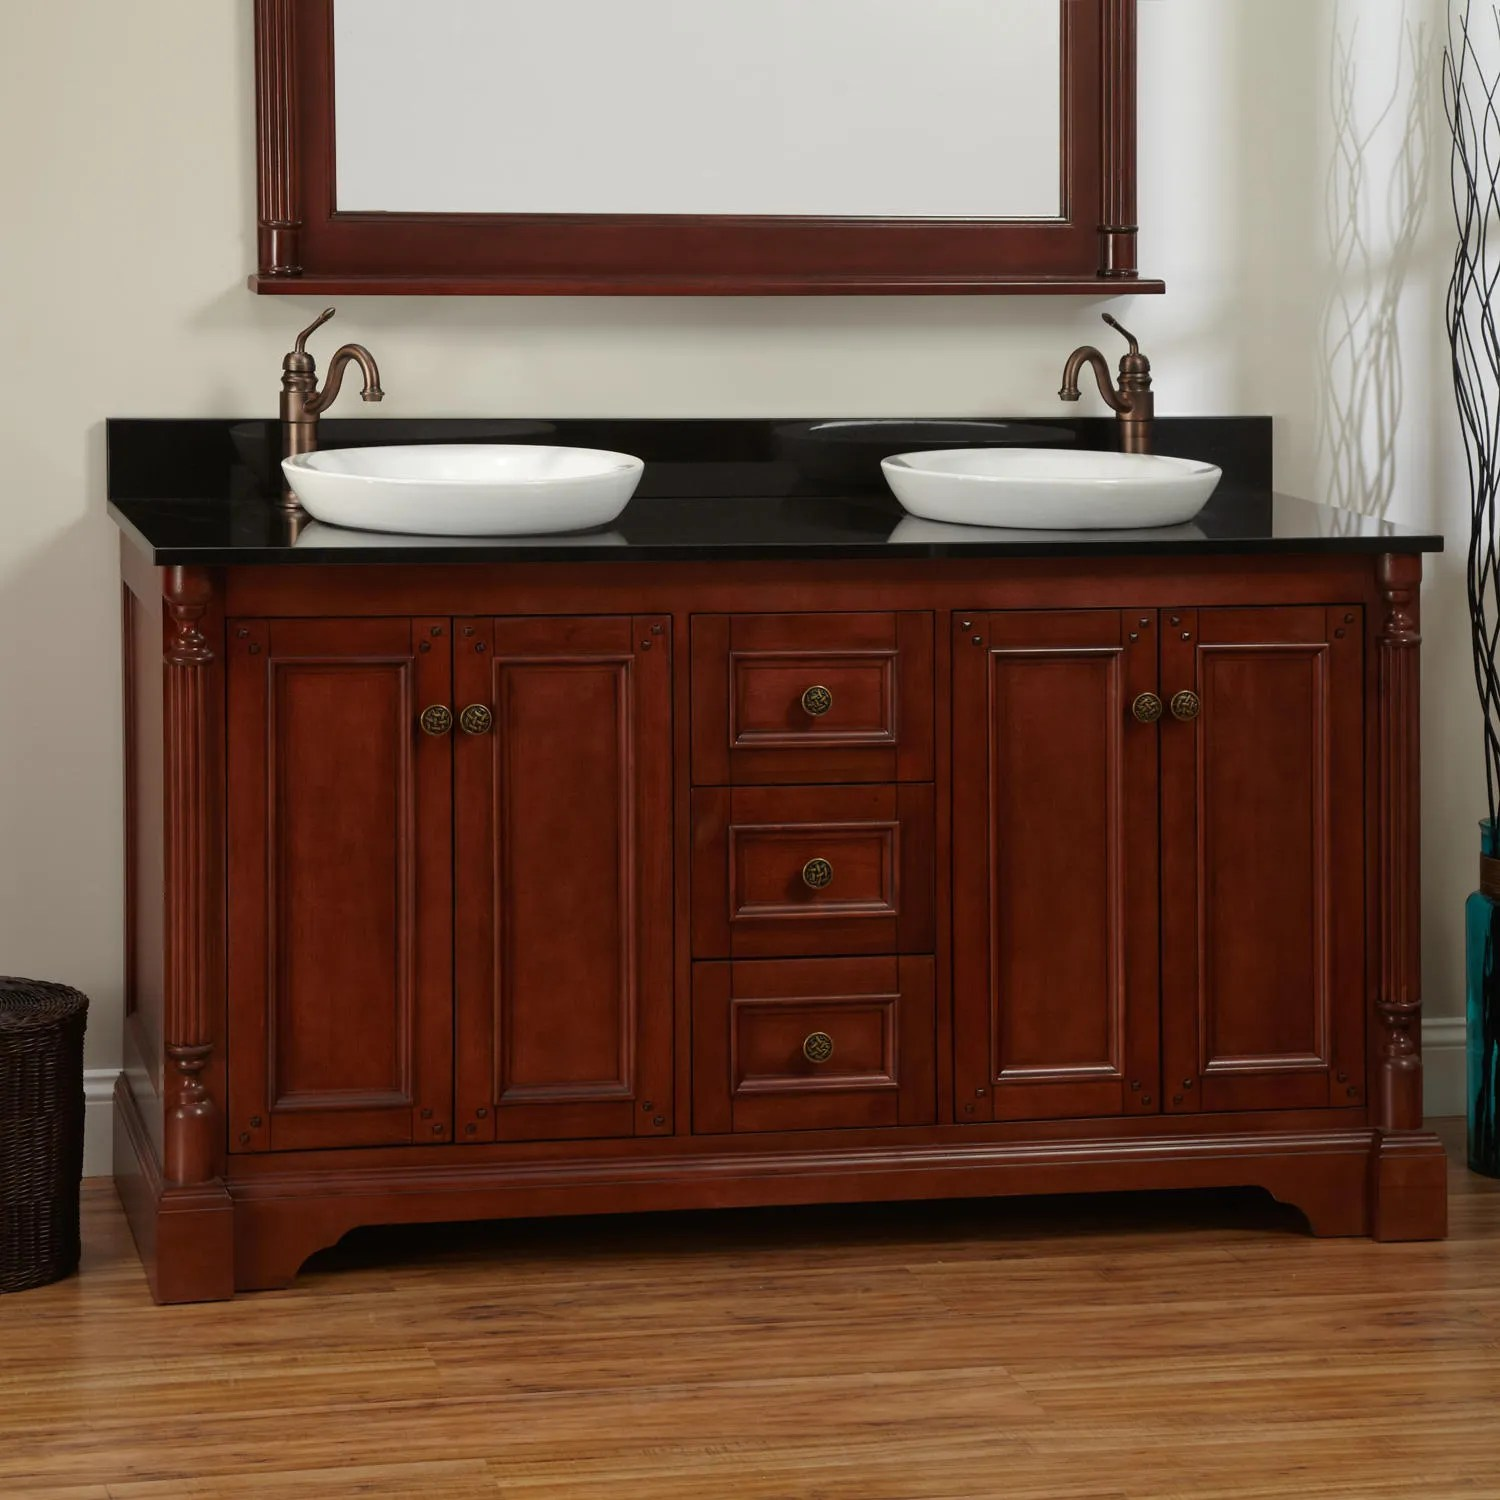 60 Trevett Double Vanity for Undermount Sinks  Walnut